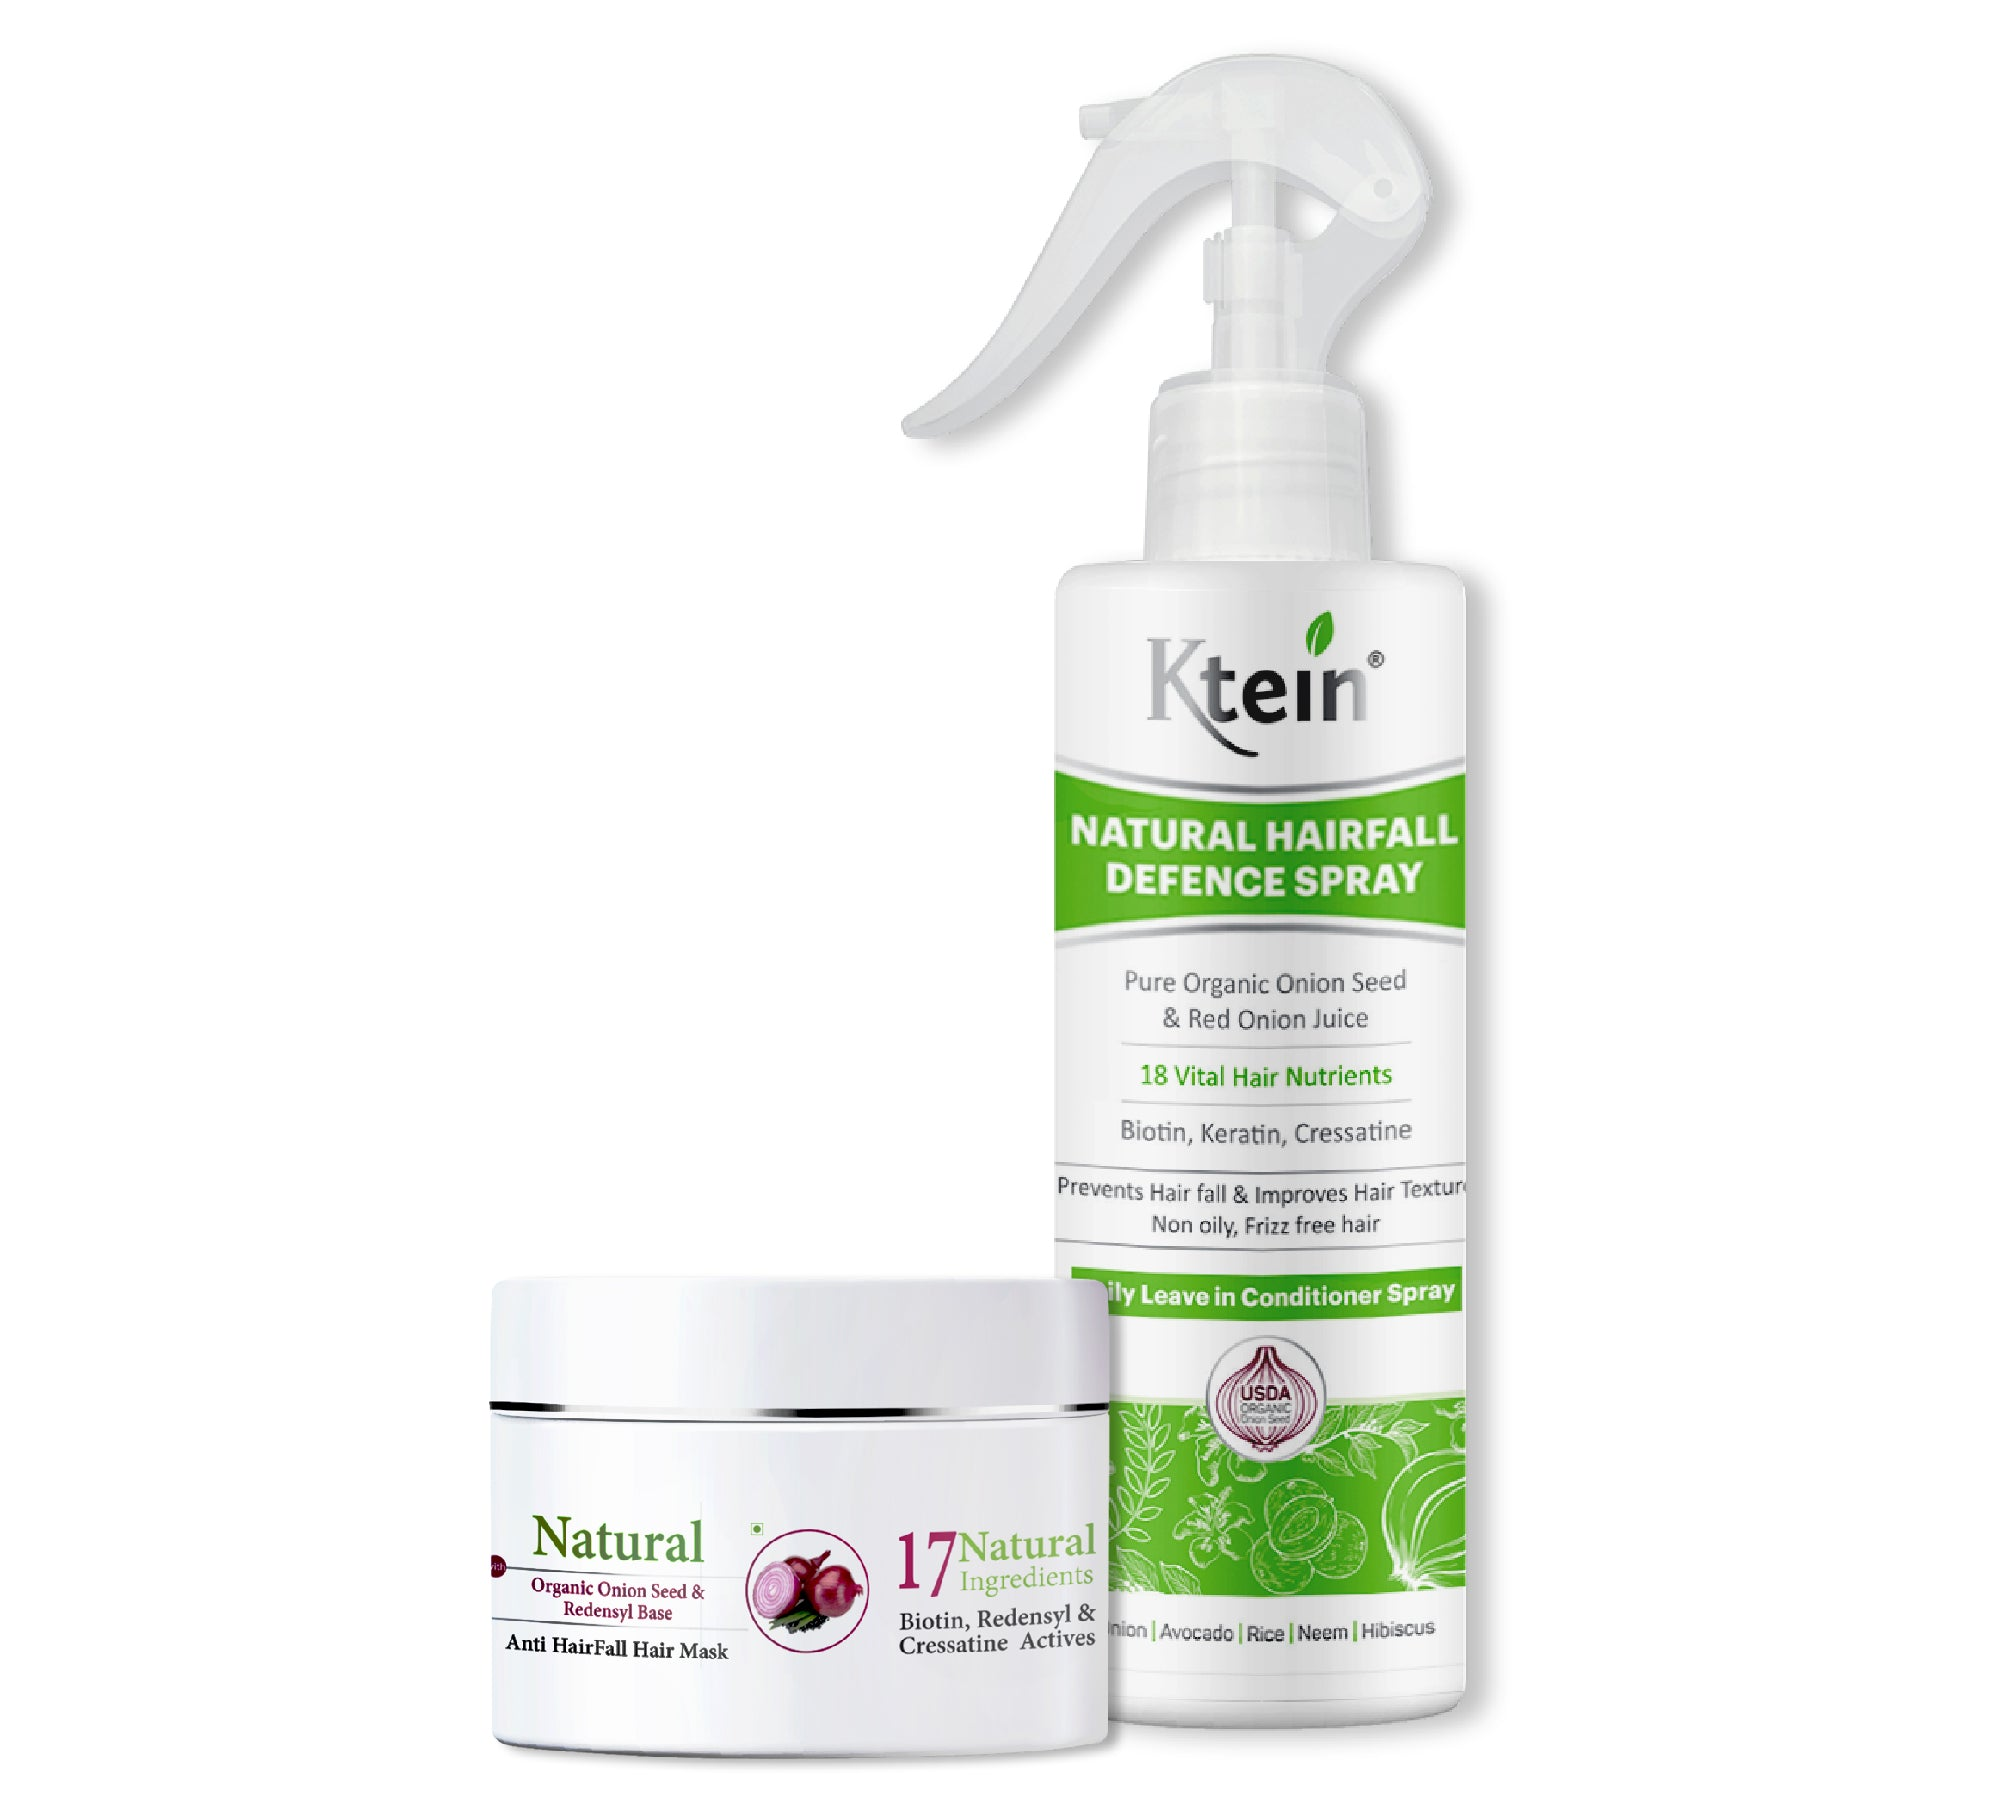 Ktein Hairfall Combo - Ktein Cosmetics - Essencec Of Natural Hair Care Product